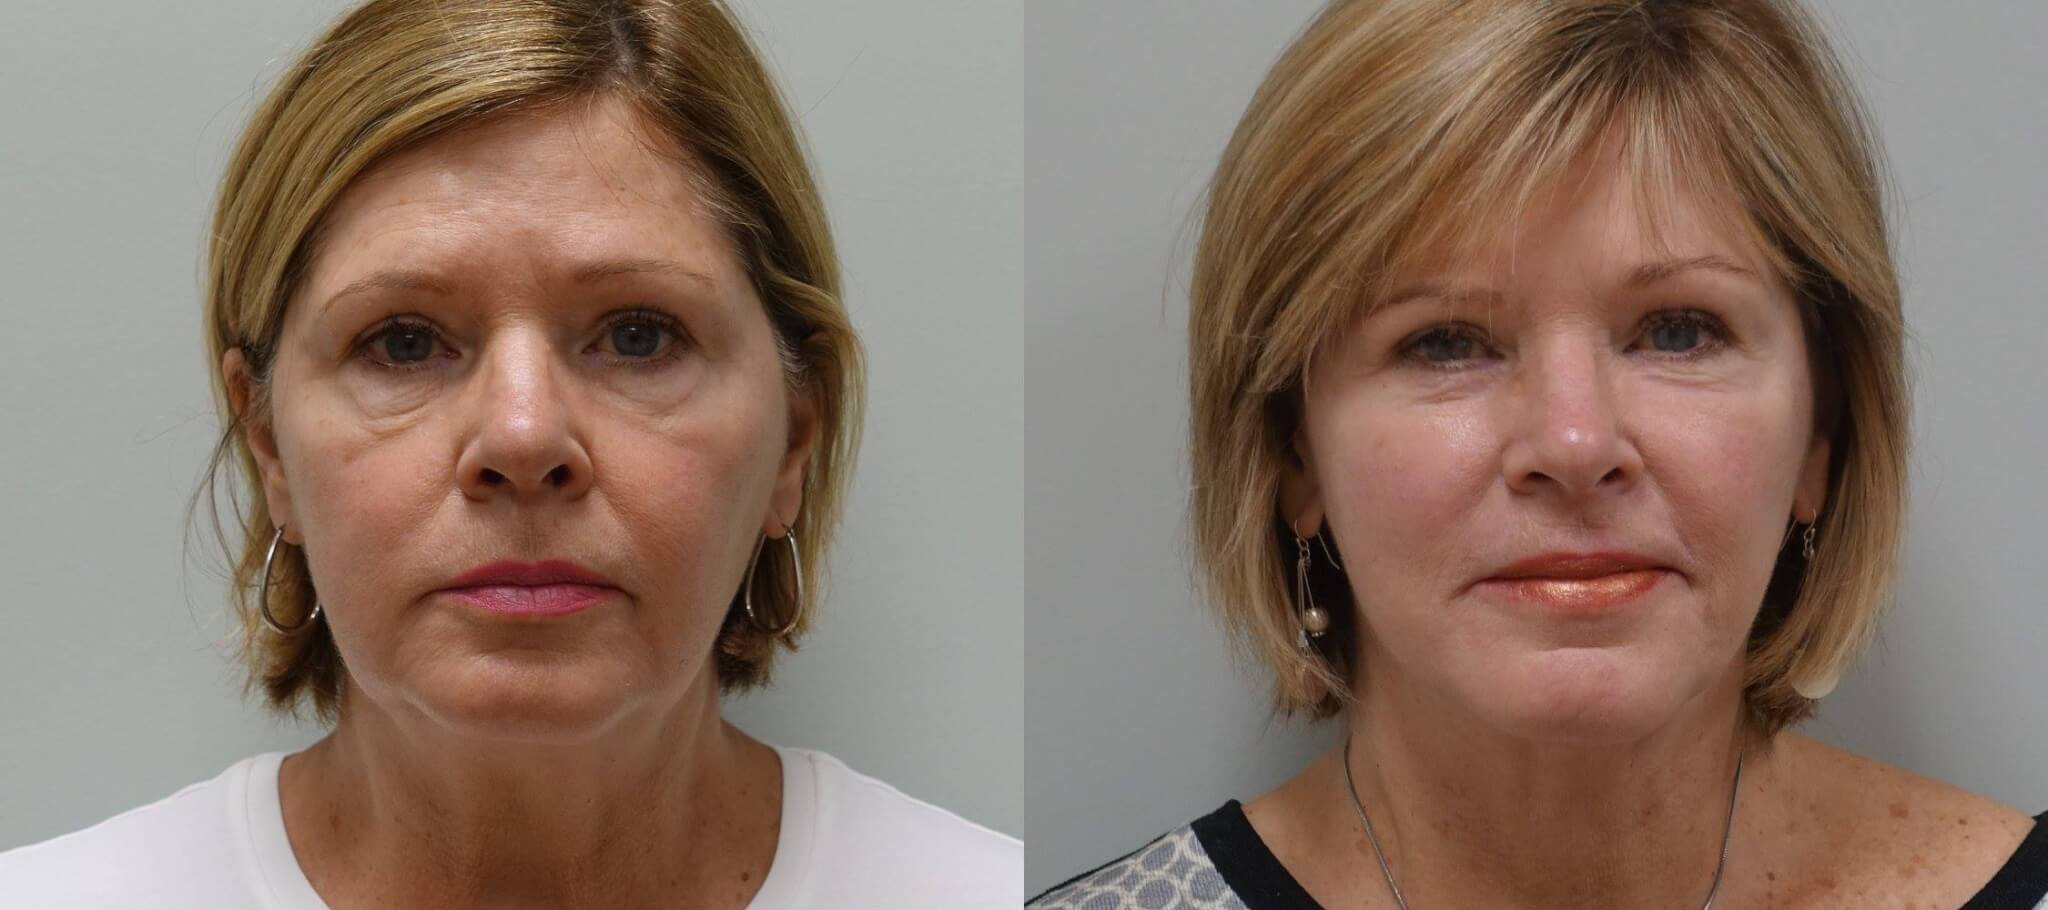 Before and After Upper and Lower Eyelid Lift - Facelift with Fat Grafts